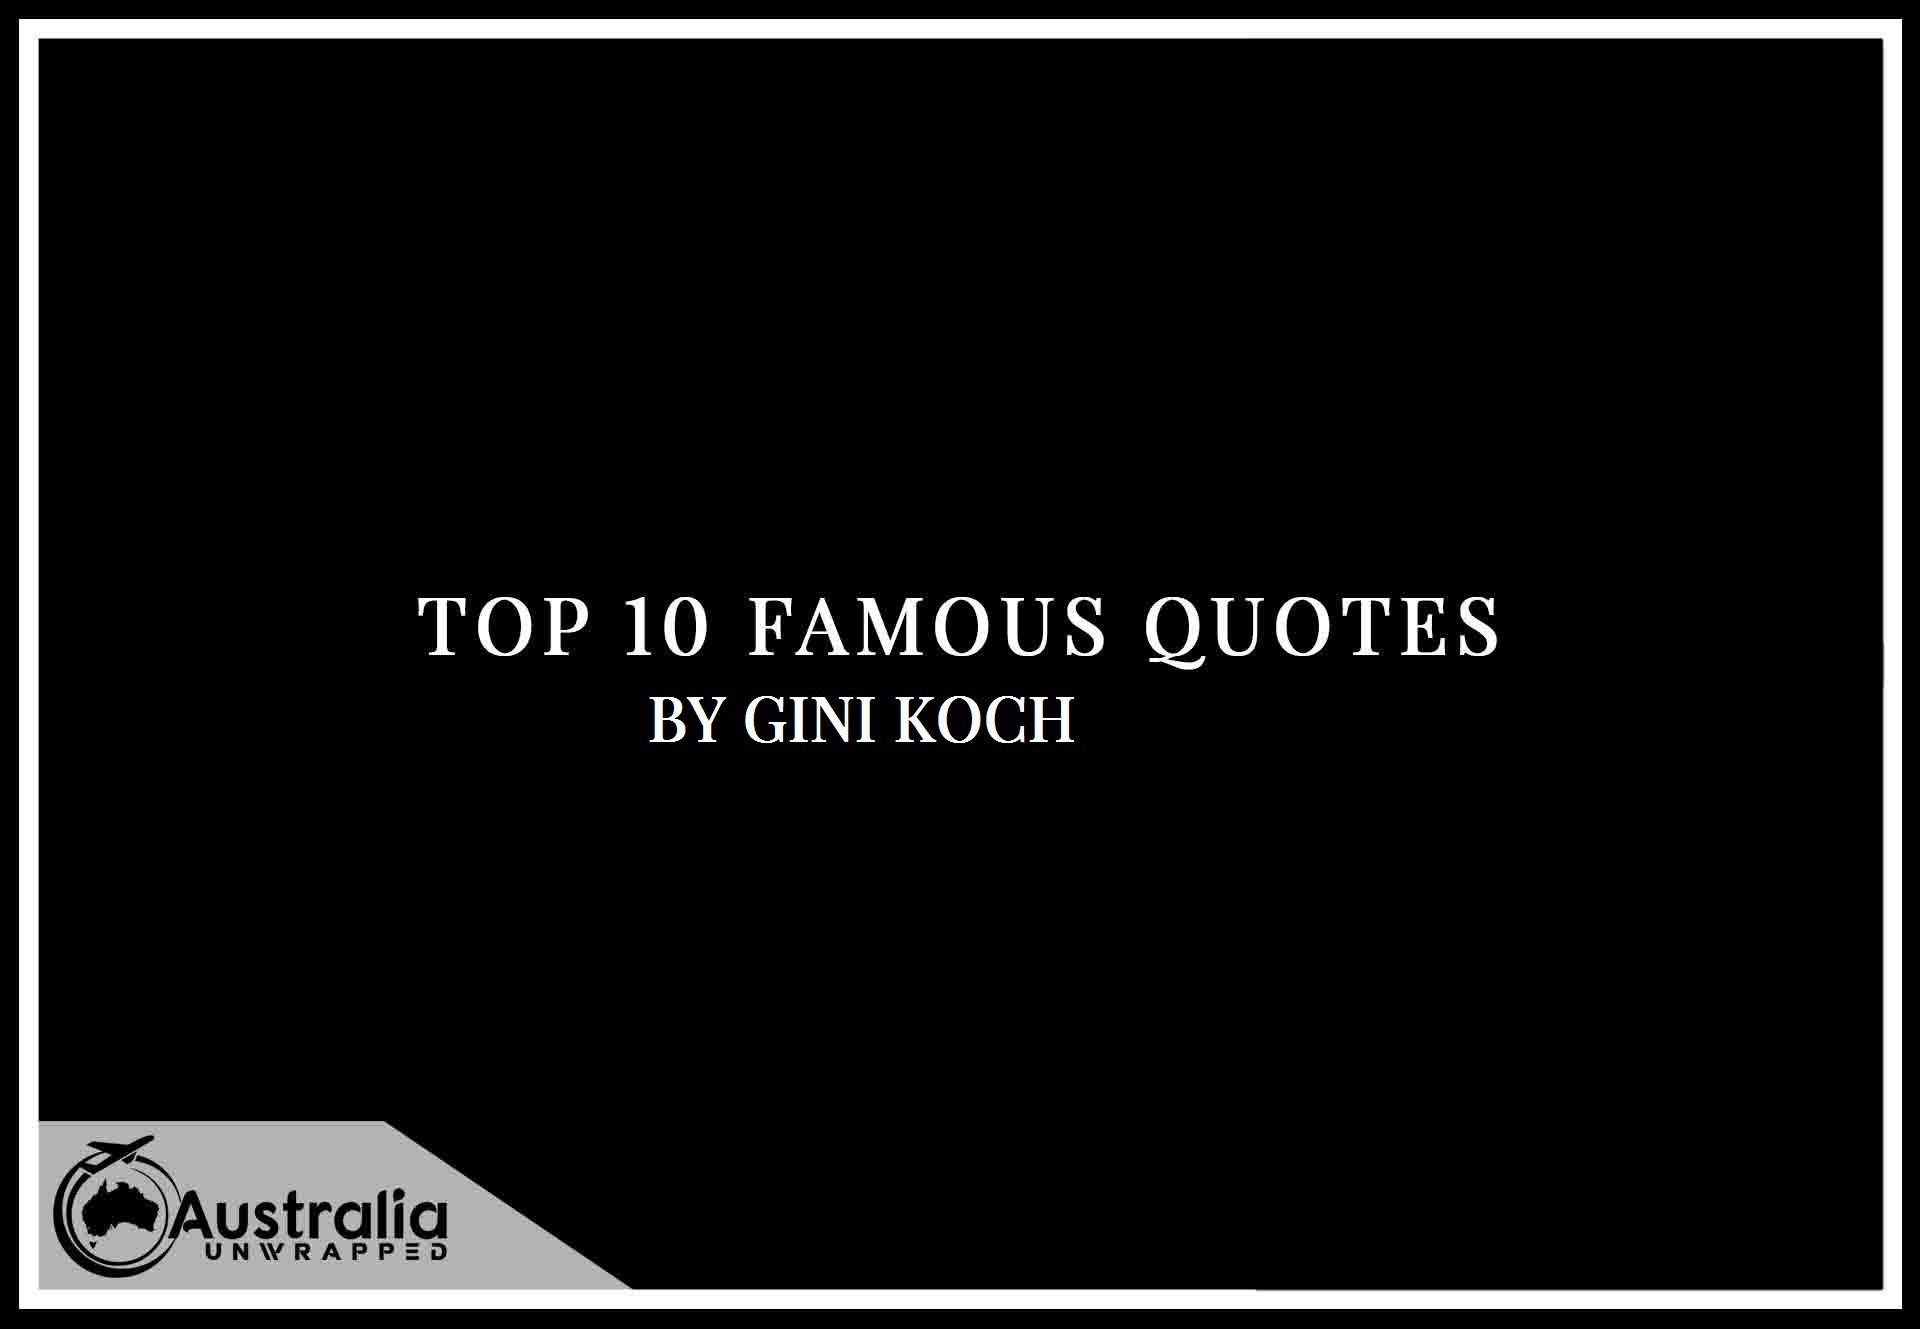 Gini Koch's Top 10 Popular and Famous Quotes